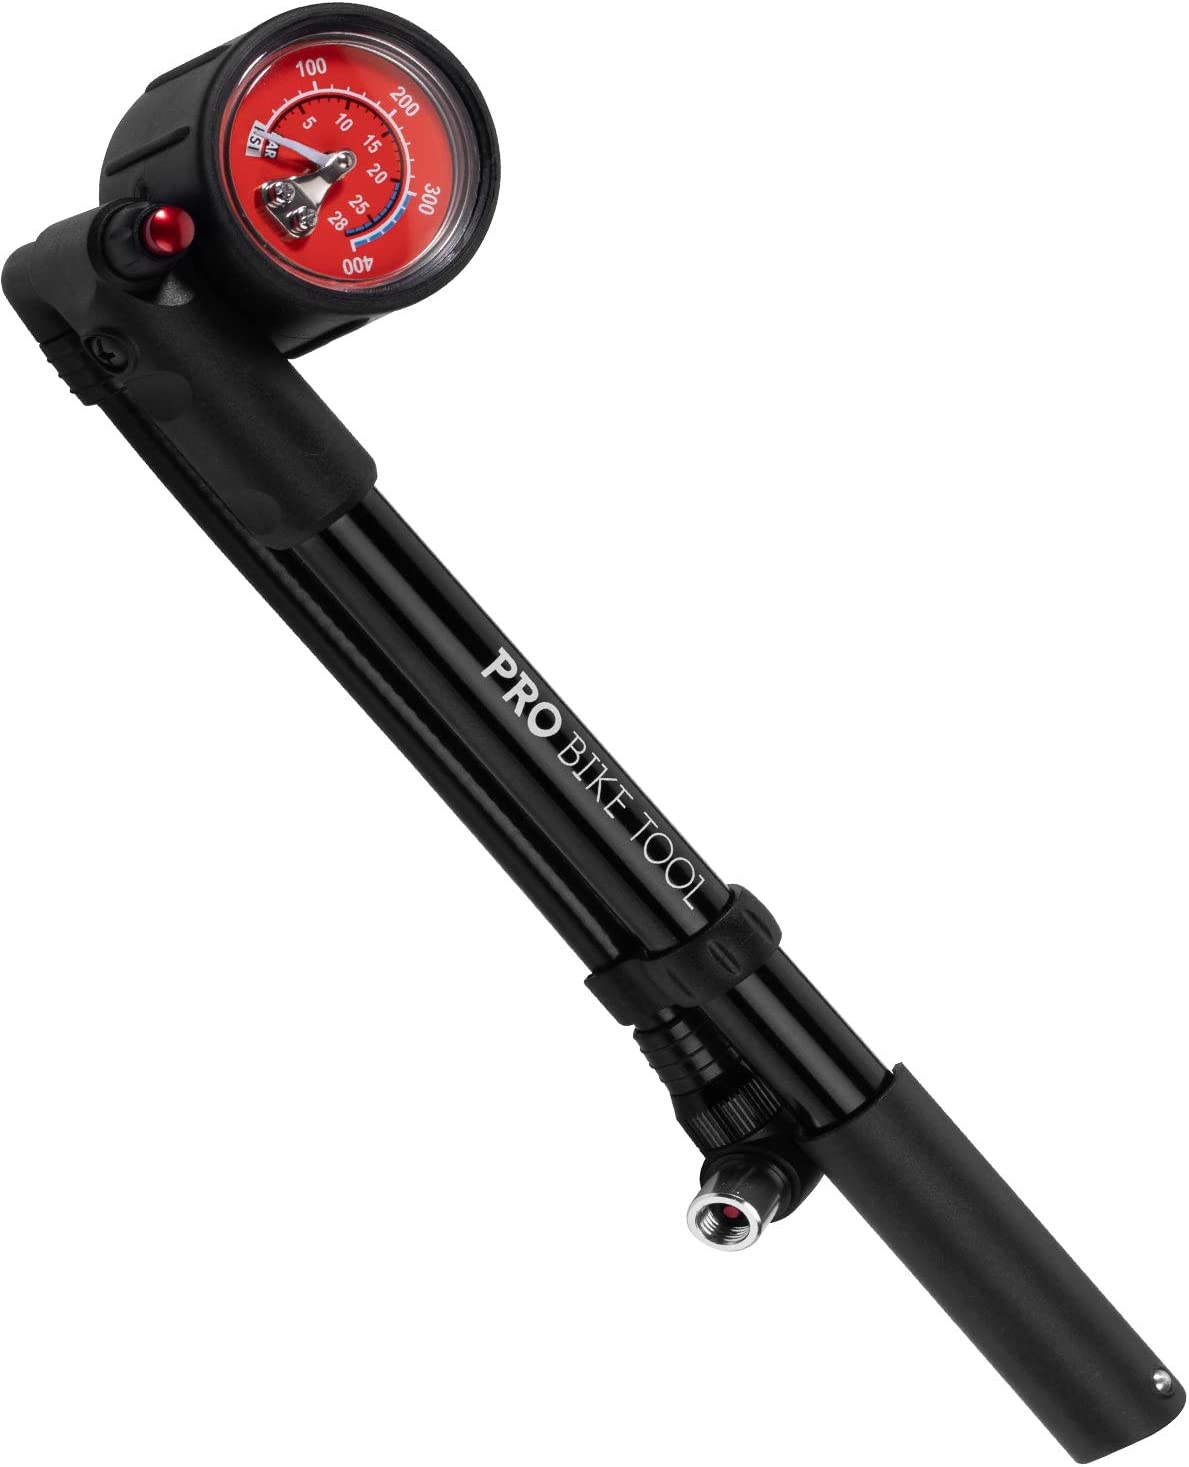 Bike Shock Pump for Mountain, MTB, Road Bikes and Motorcycle – High Pressure 300 Psi for Front Fork and Rear Bicycle Suspension and Air Shocks – Anti-Leak Valve – T-Handle Design – Industrial Gauge